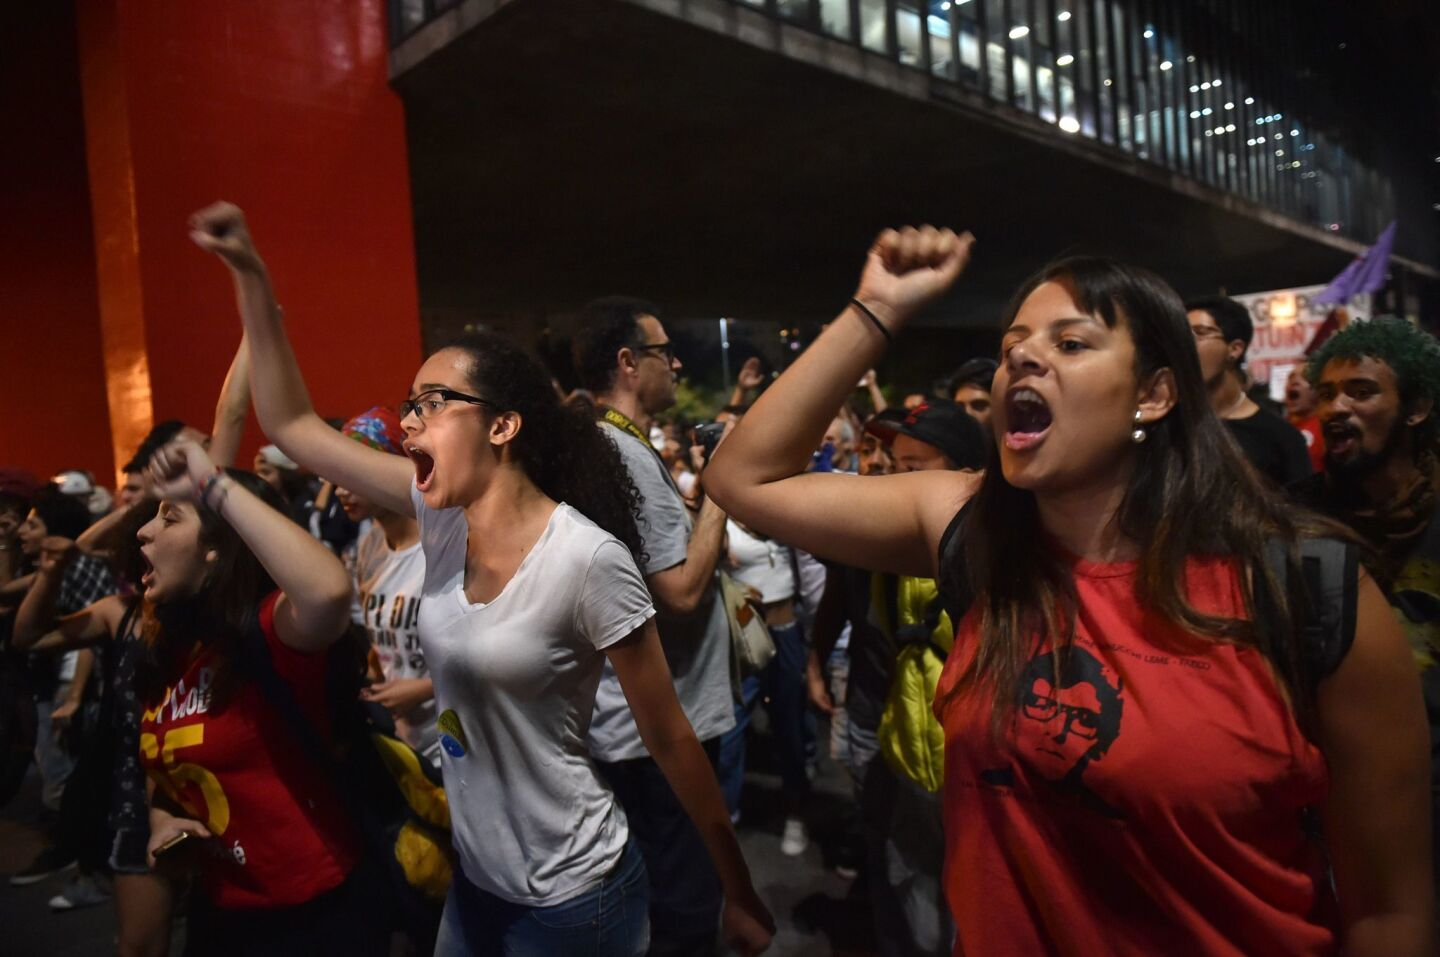 Brazilians take to the streets ahead of impeachment vote